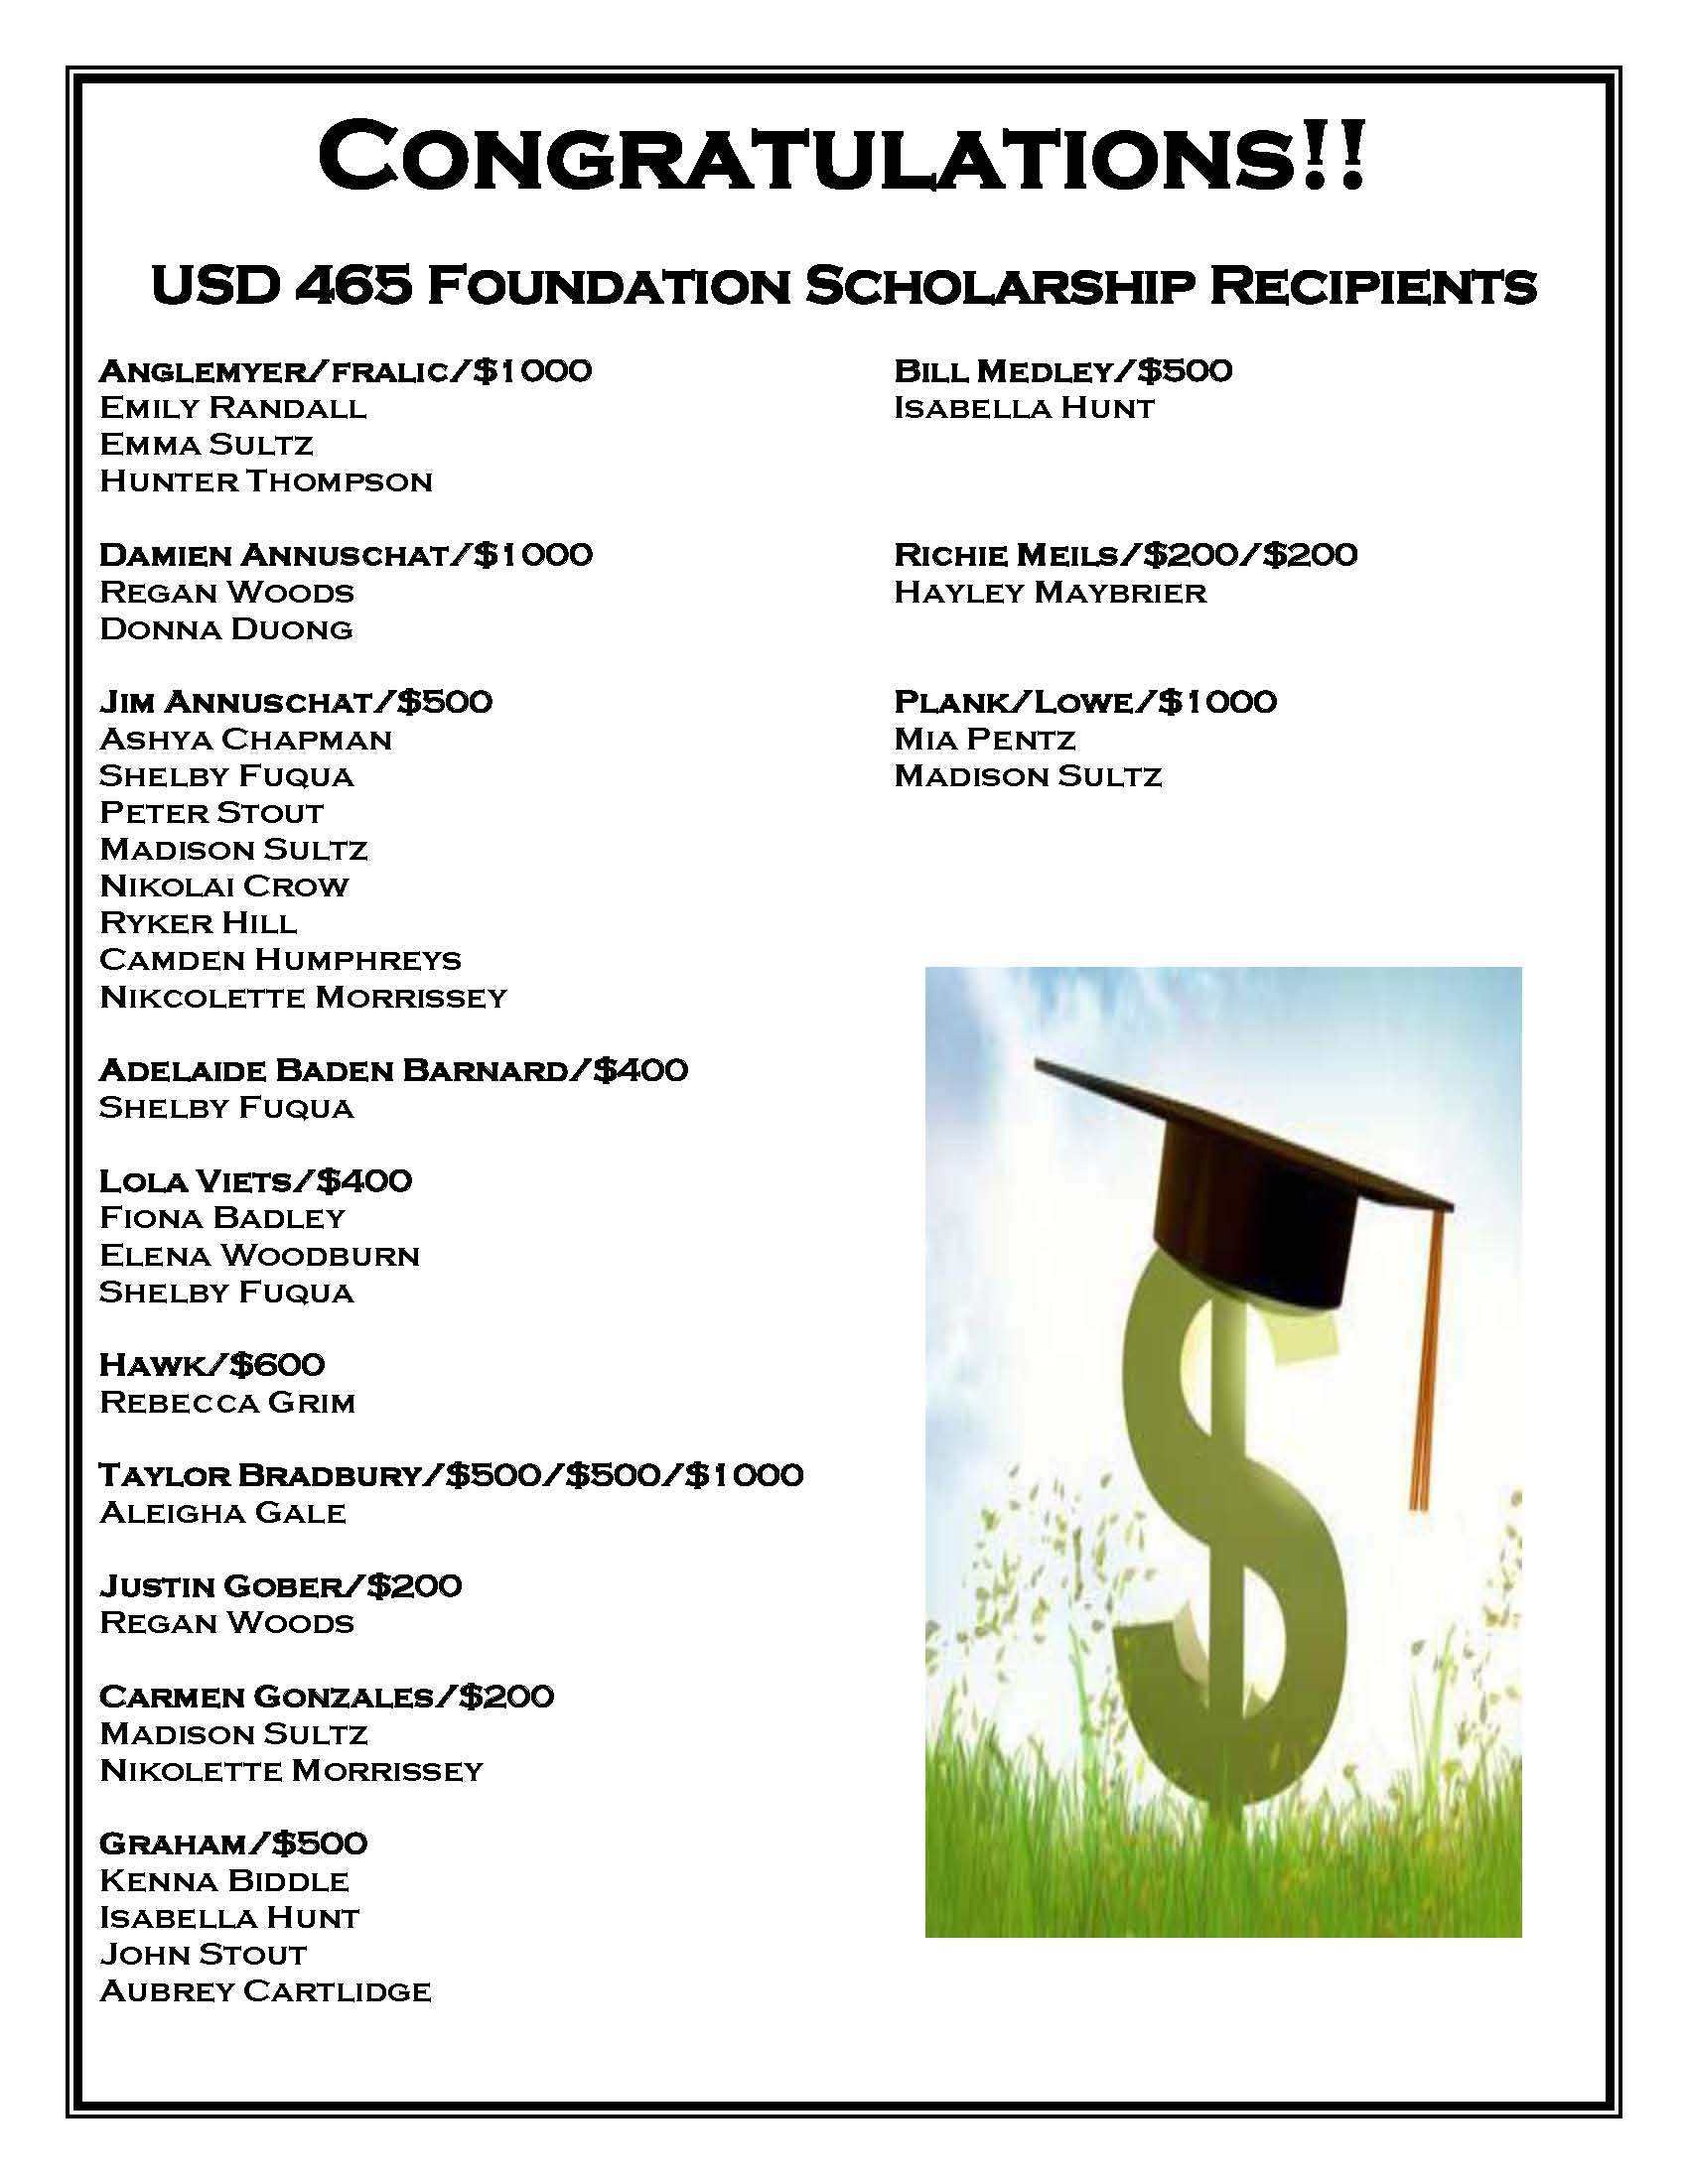 USD 465 Foundation Scholarship Recipients